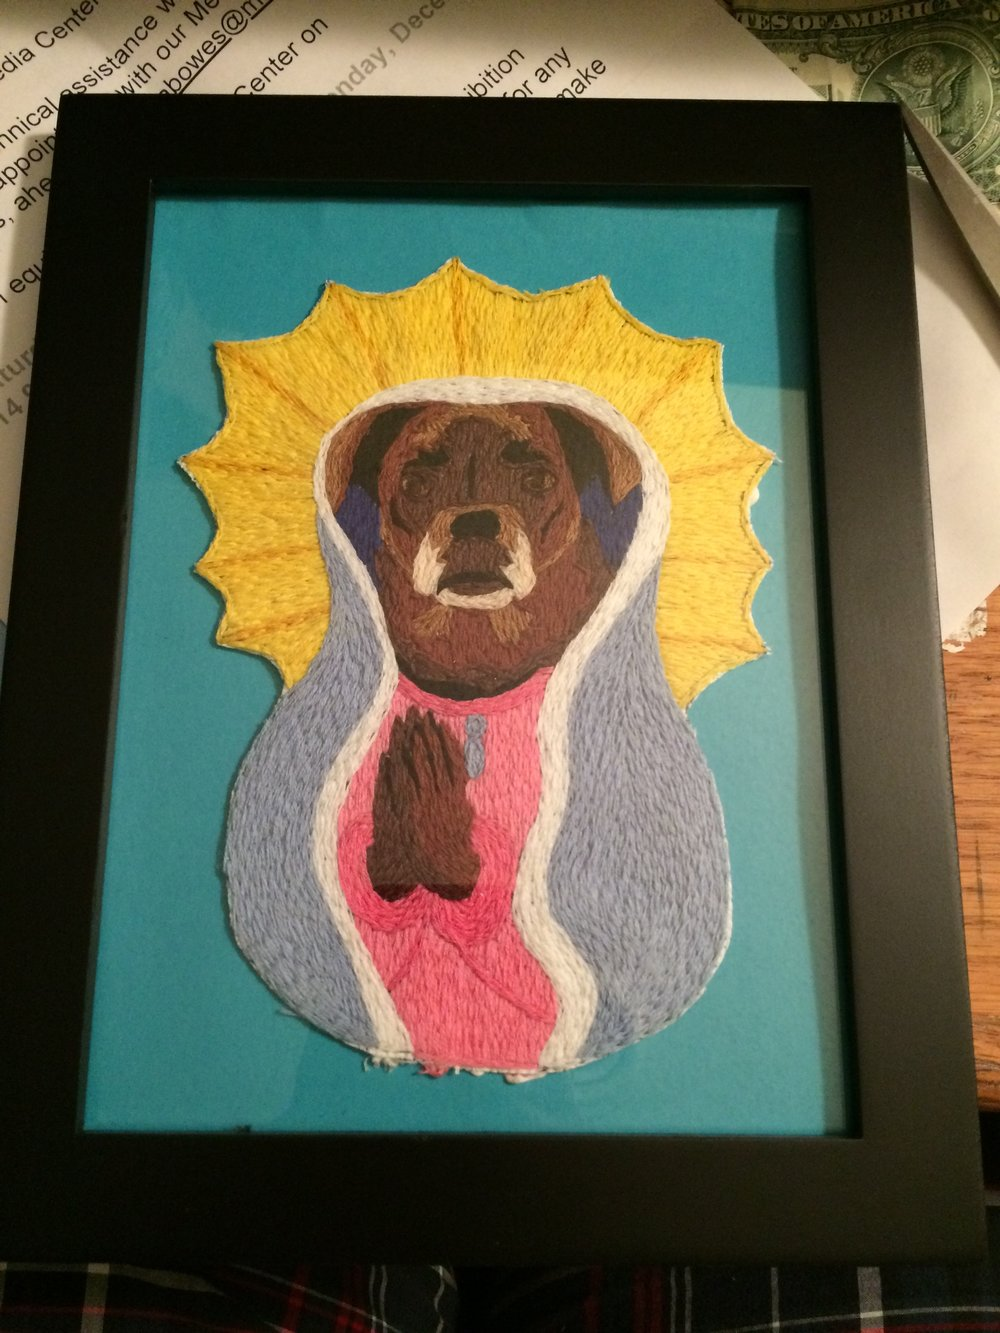 A commissioned portrait of someone's dog as Maria De Guadalupe.